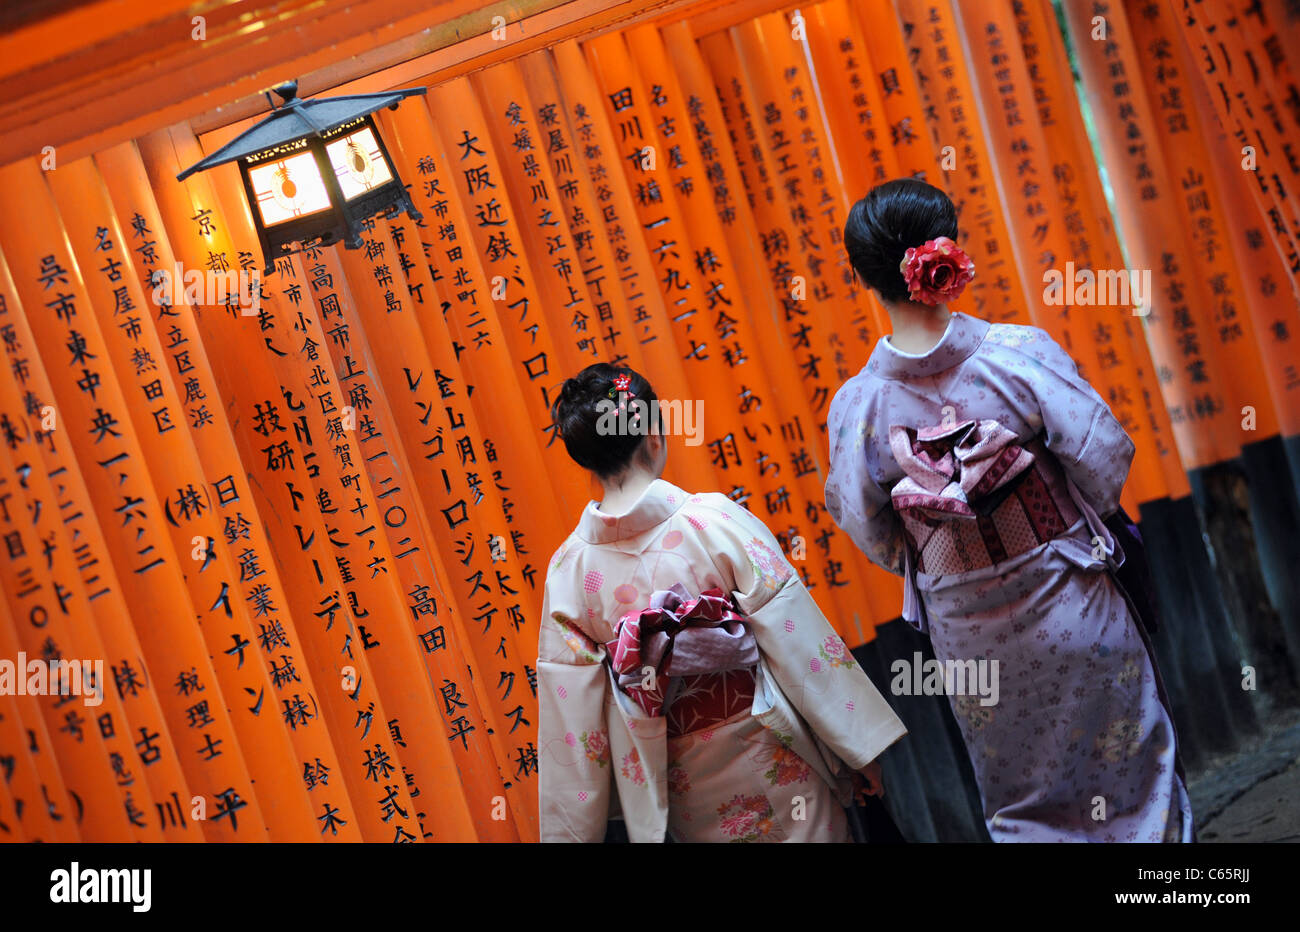 Two Japanese women wearing kimonos walk past torii or red gates, lining a path at Fushimi Inari shrine near Kyoto. - Stock Image